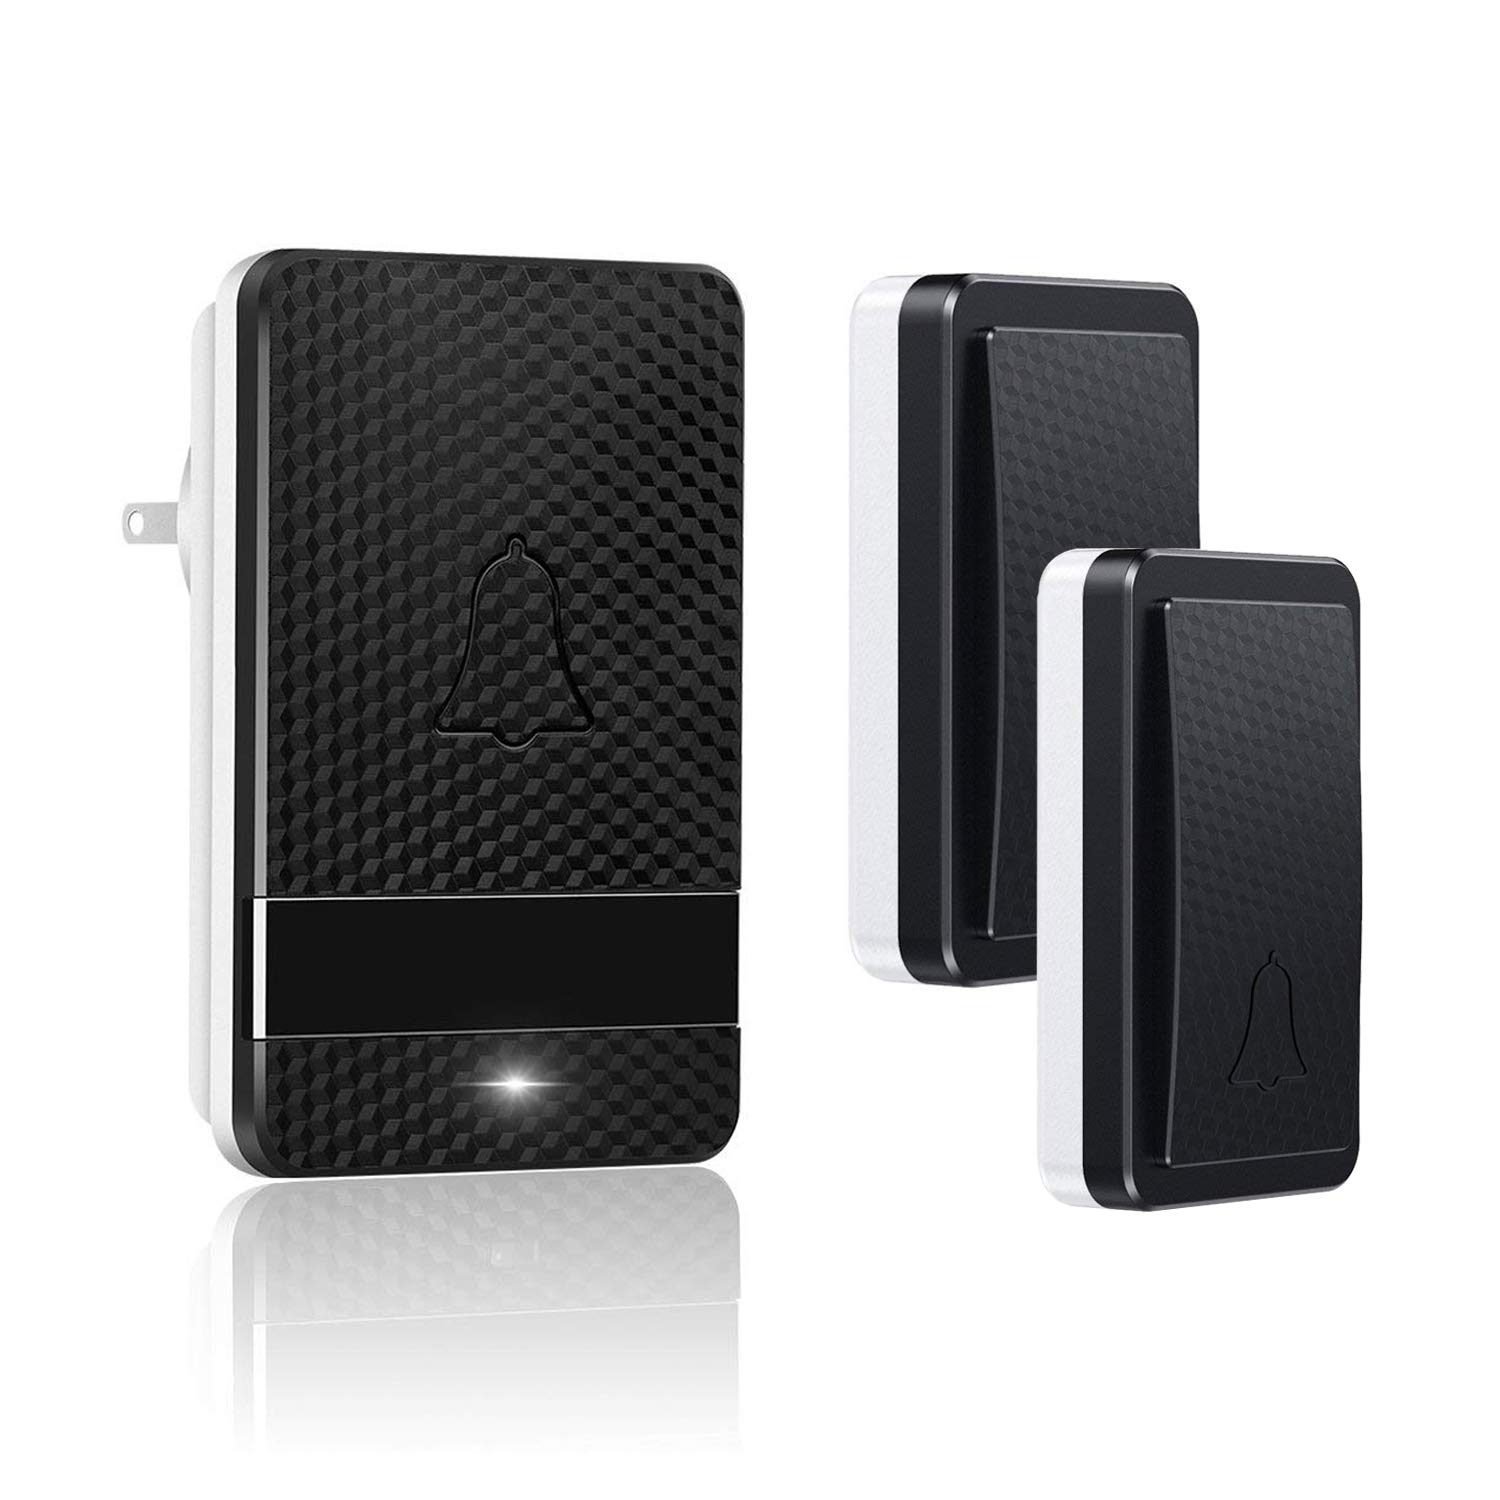 Naswei Wireless Doorbell Waterproof Door Bell Chimes Kits with Battery Free 28 Melodies Level Volume LED Indicator Door Chime 1 Plug in Receiver 2 Transmitters Best for Home Business Office Black